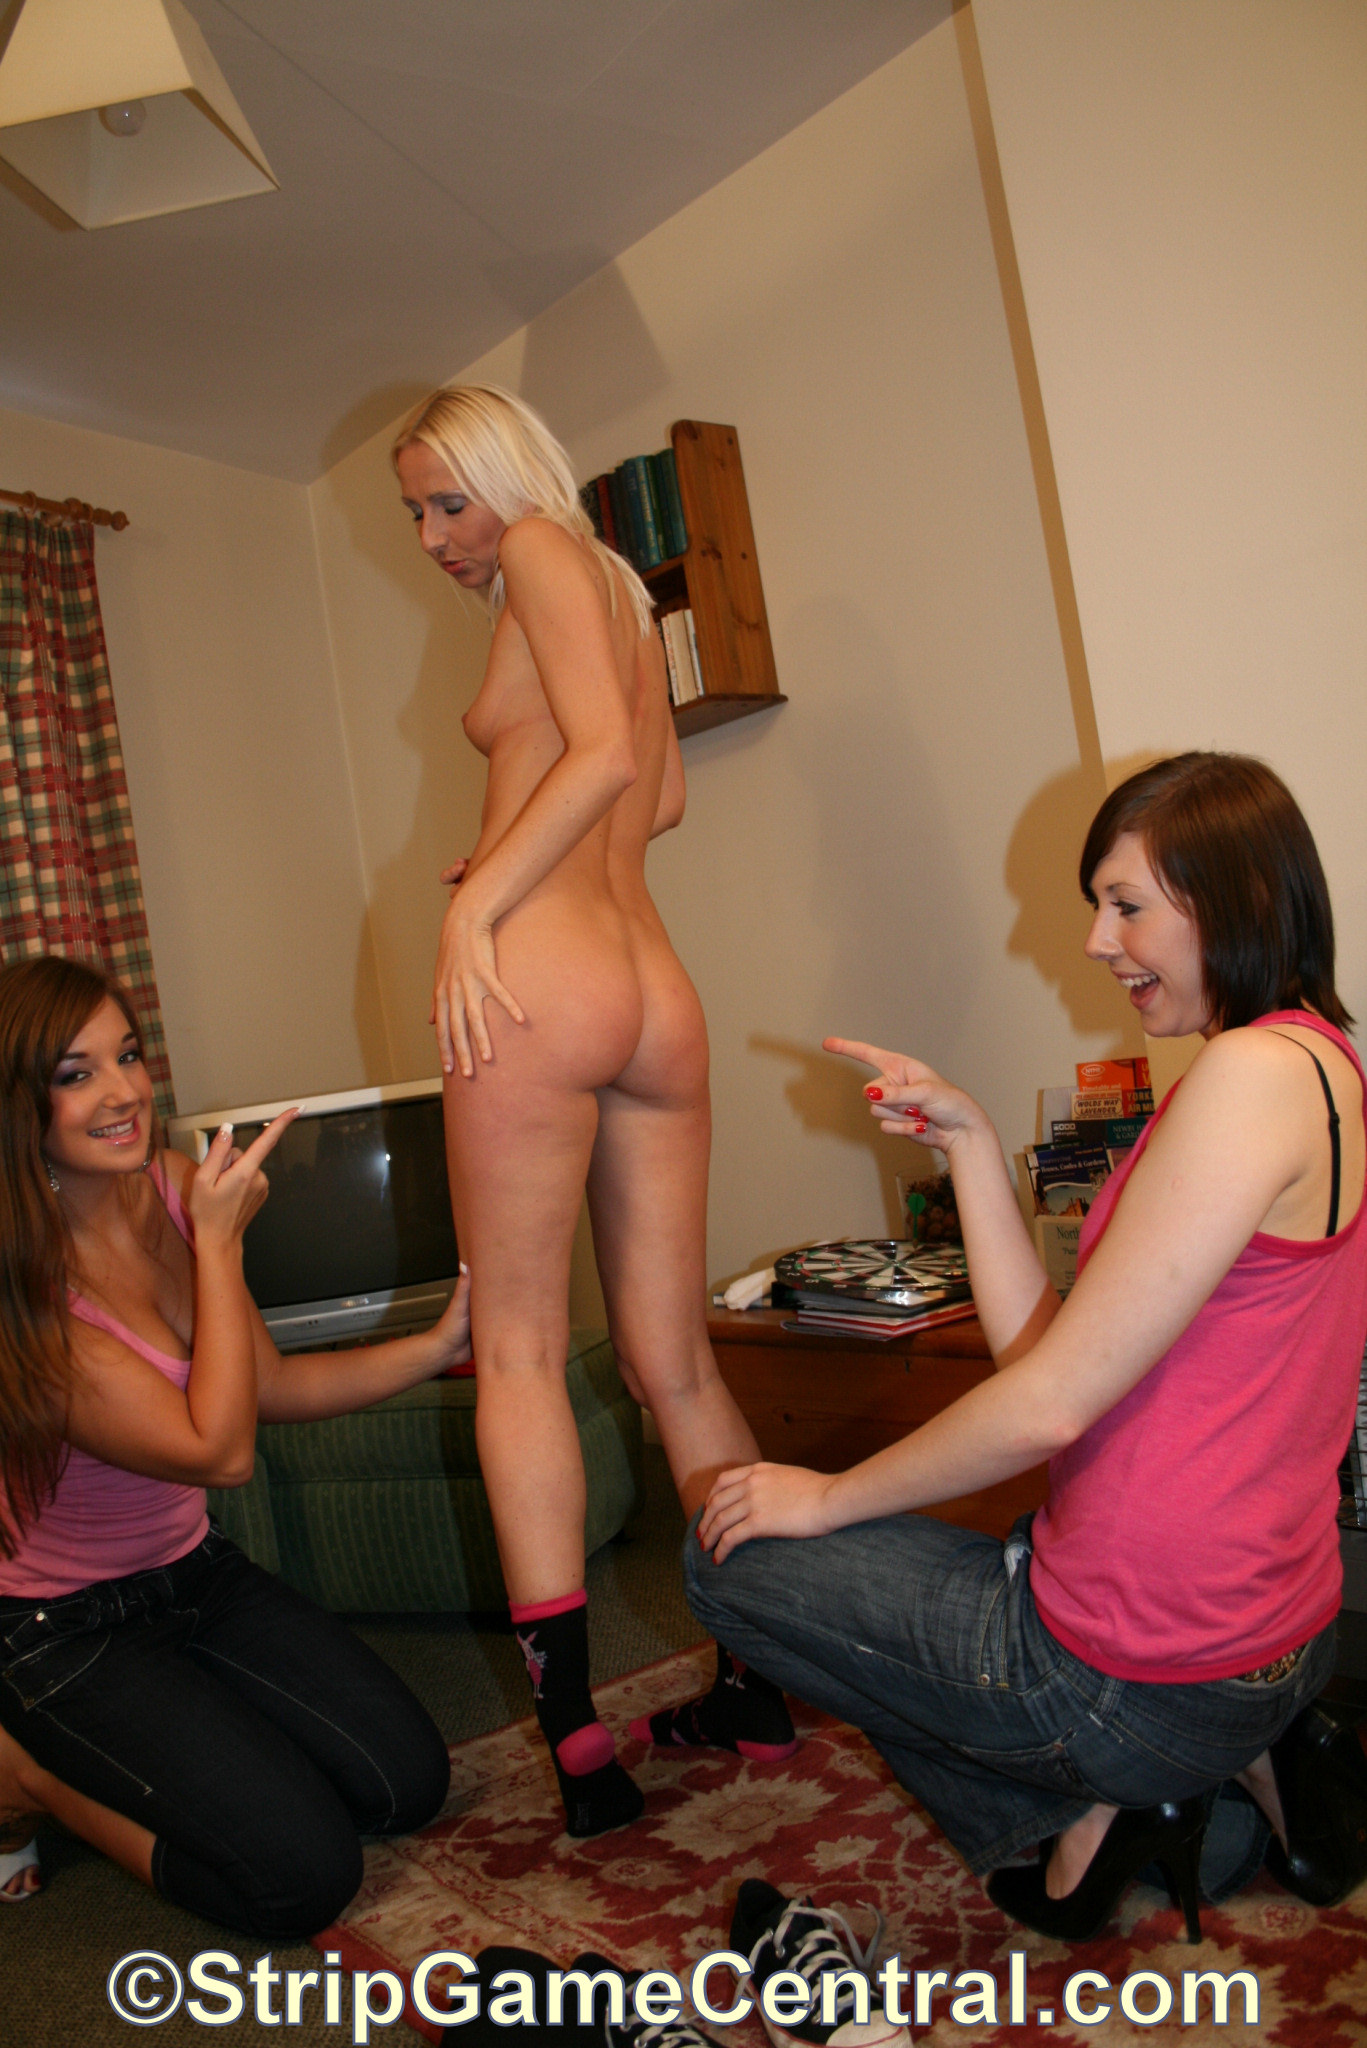 Two clothed women tease a naked woman